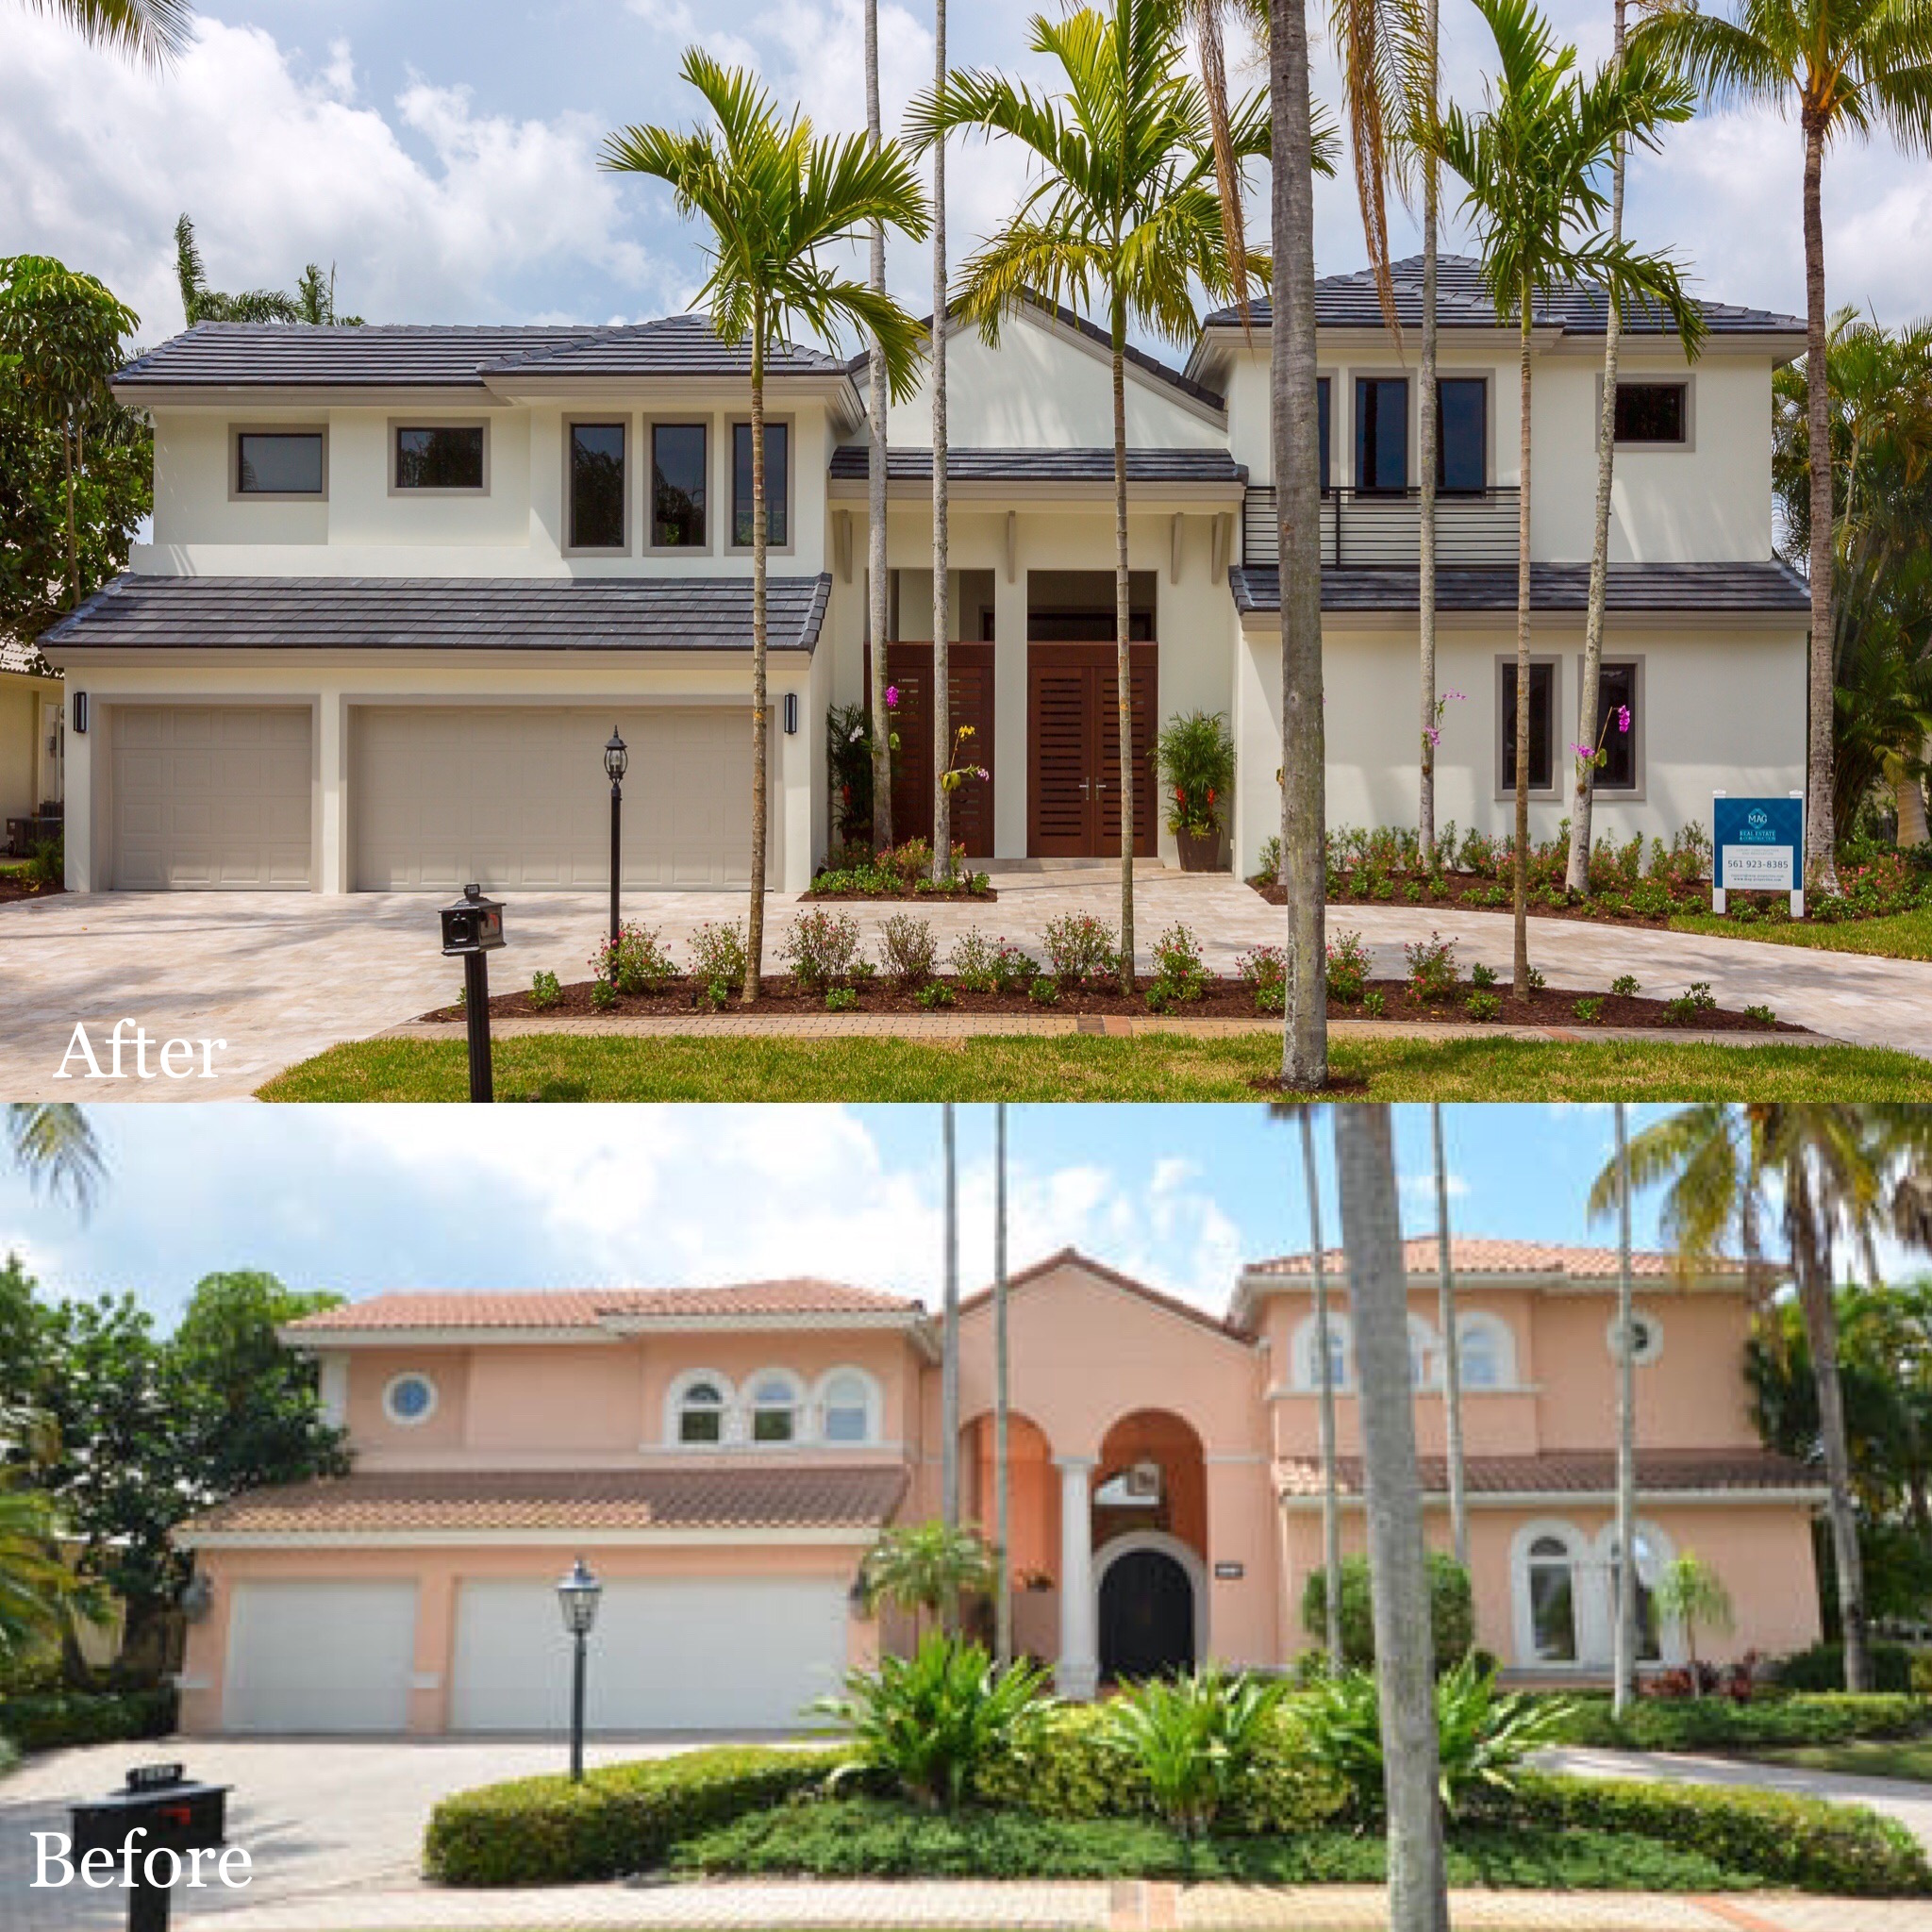 mag real estate & development construction before & after general contractor builder renovation south florida boca raton new custom luxury home for sale interior design st. andrews country club 1.jpg